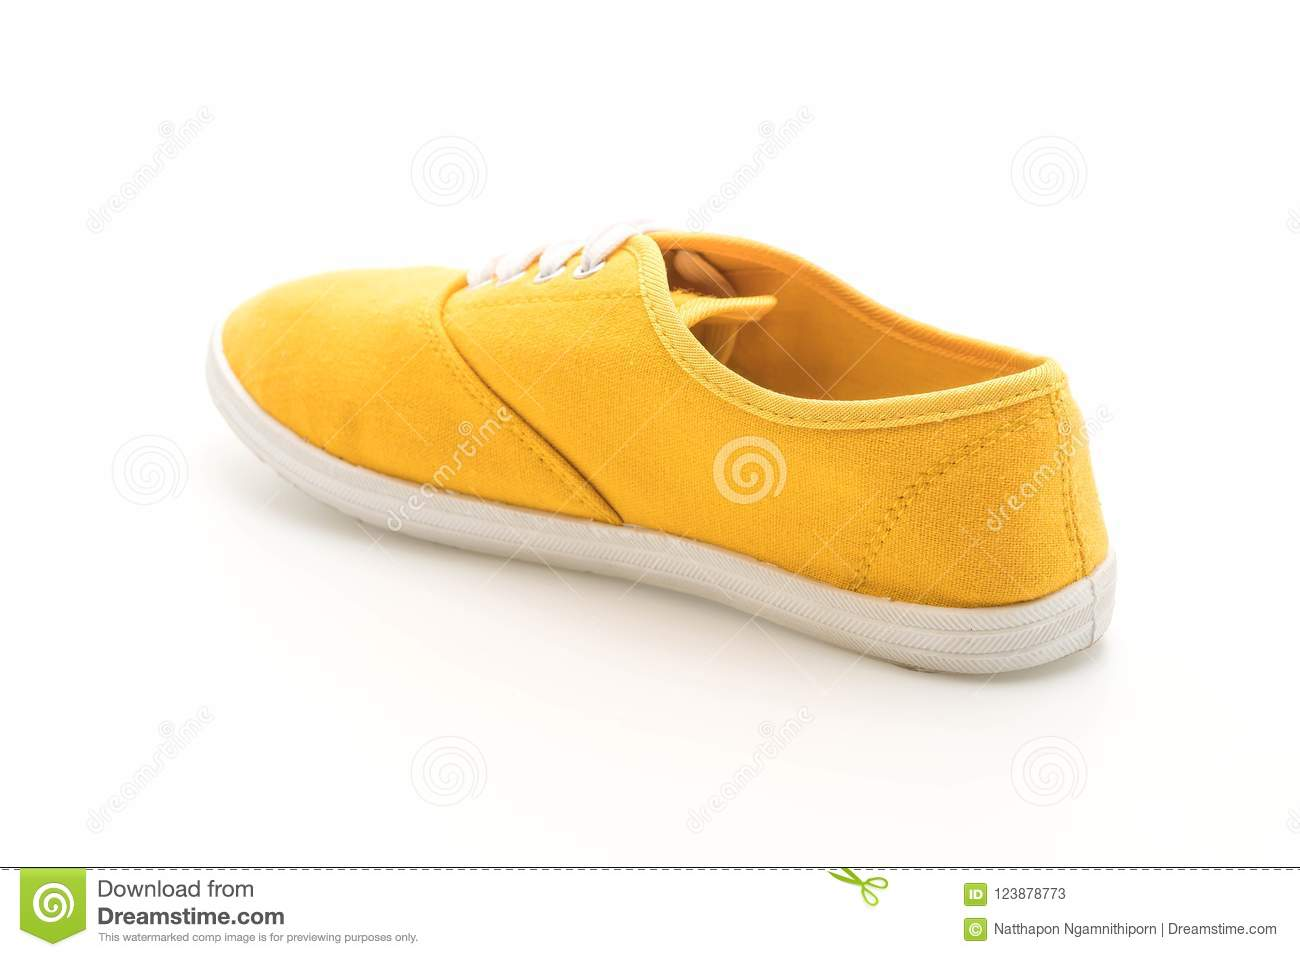 d818550e252efa Yellow Sneakers On White Background Stock Image - Image of foot ...